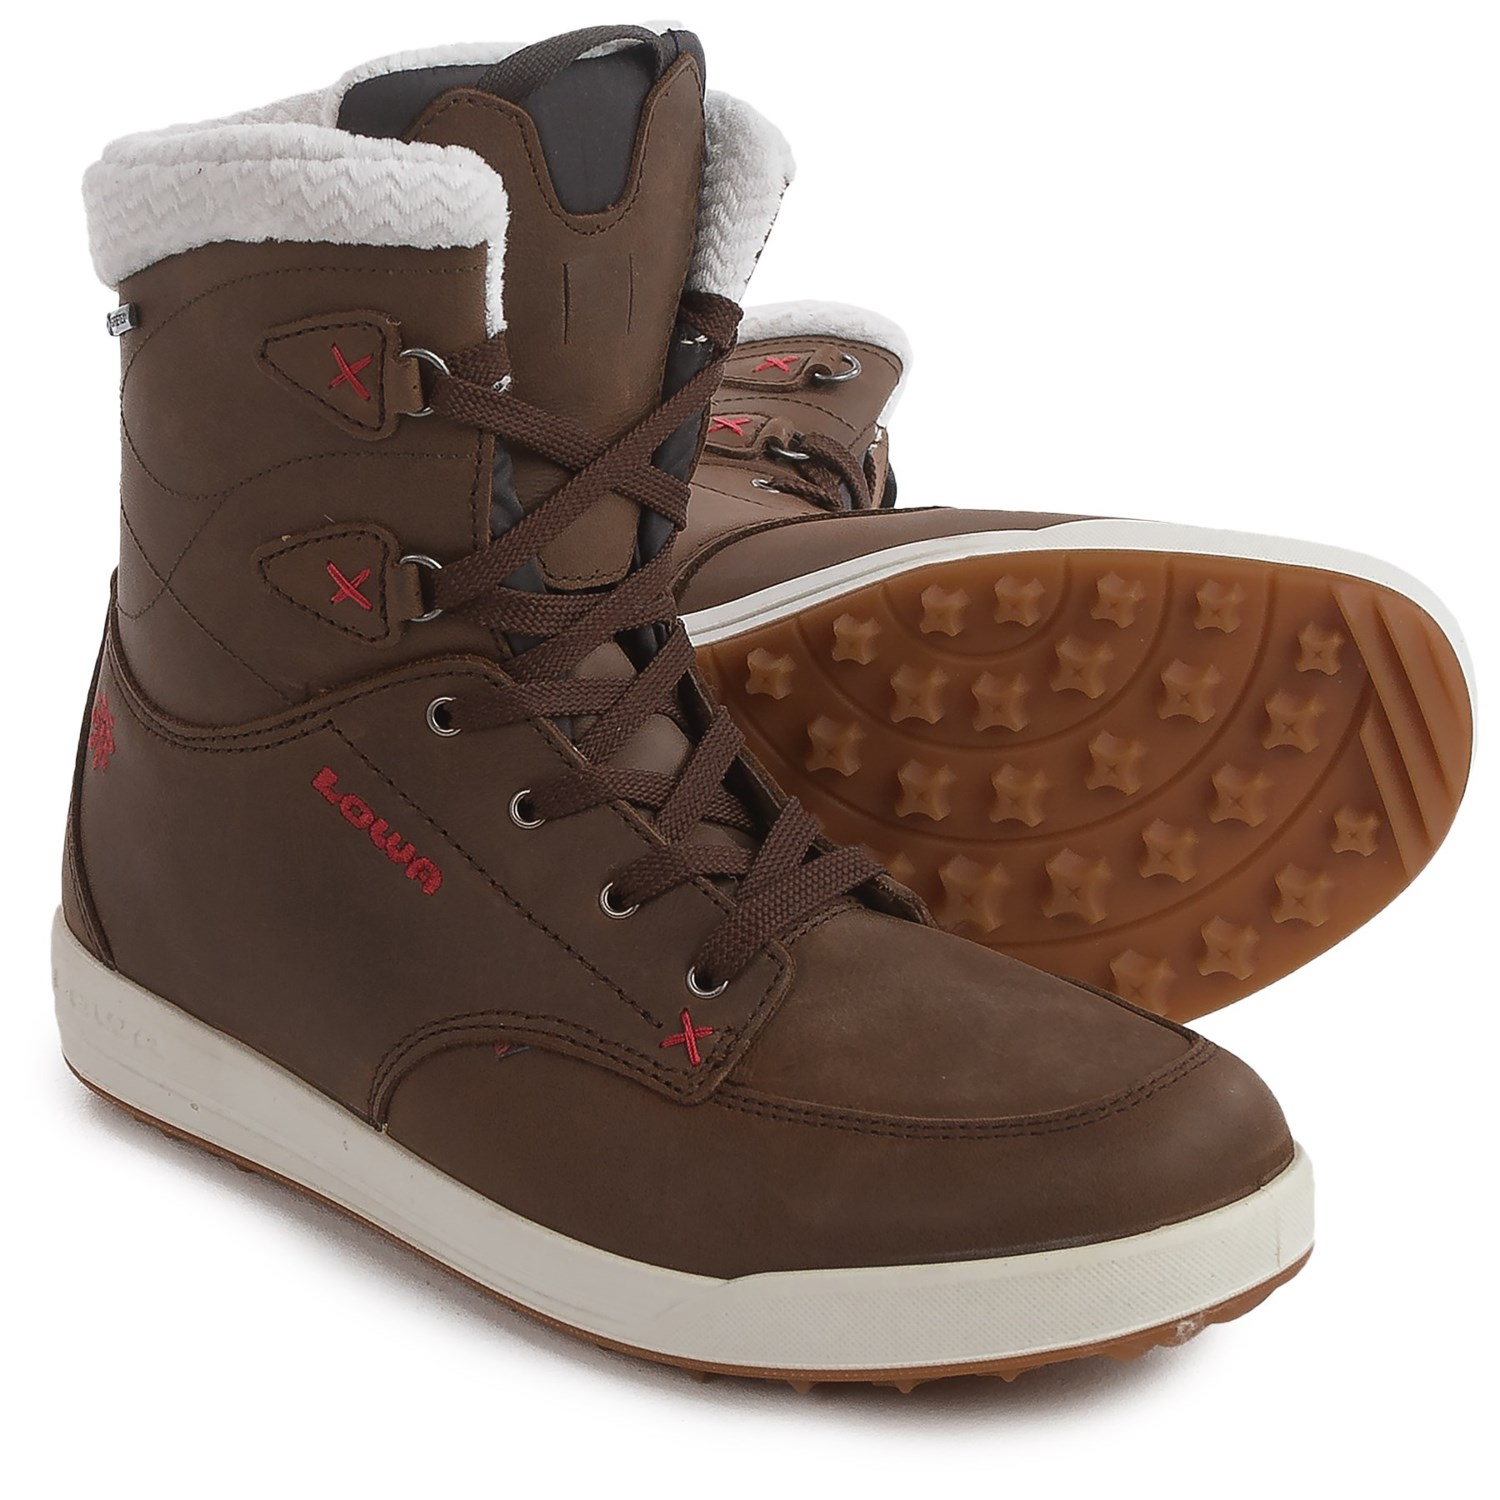 Lowa Melrose Gore-Tex® Mid Winter Boots (For Women) - Save 80%